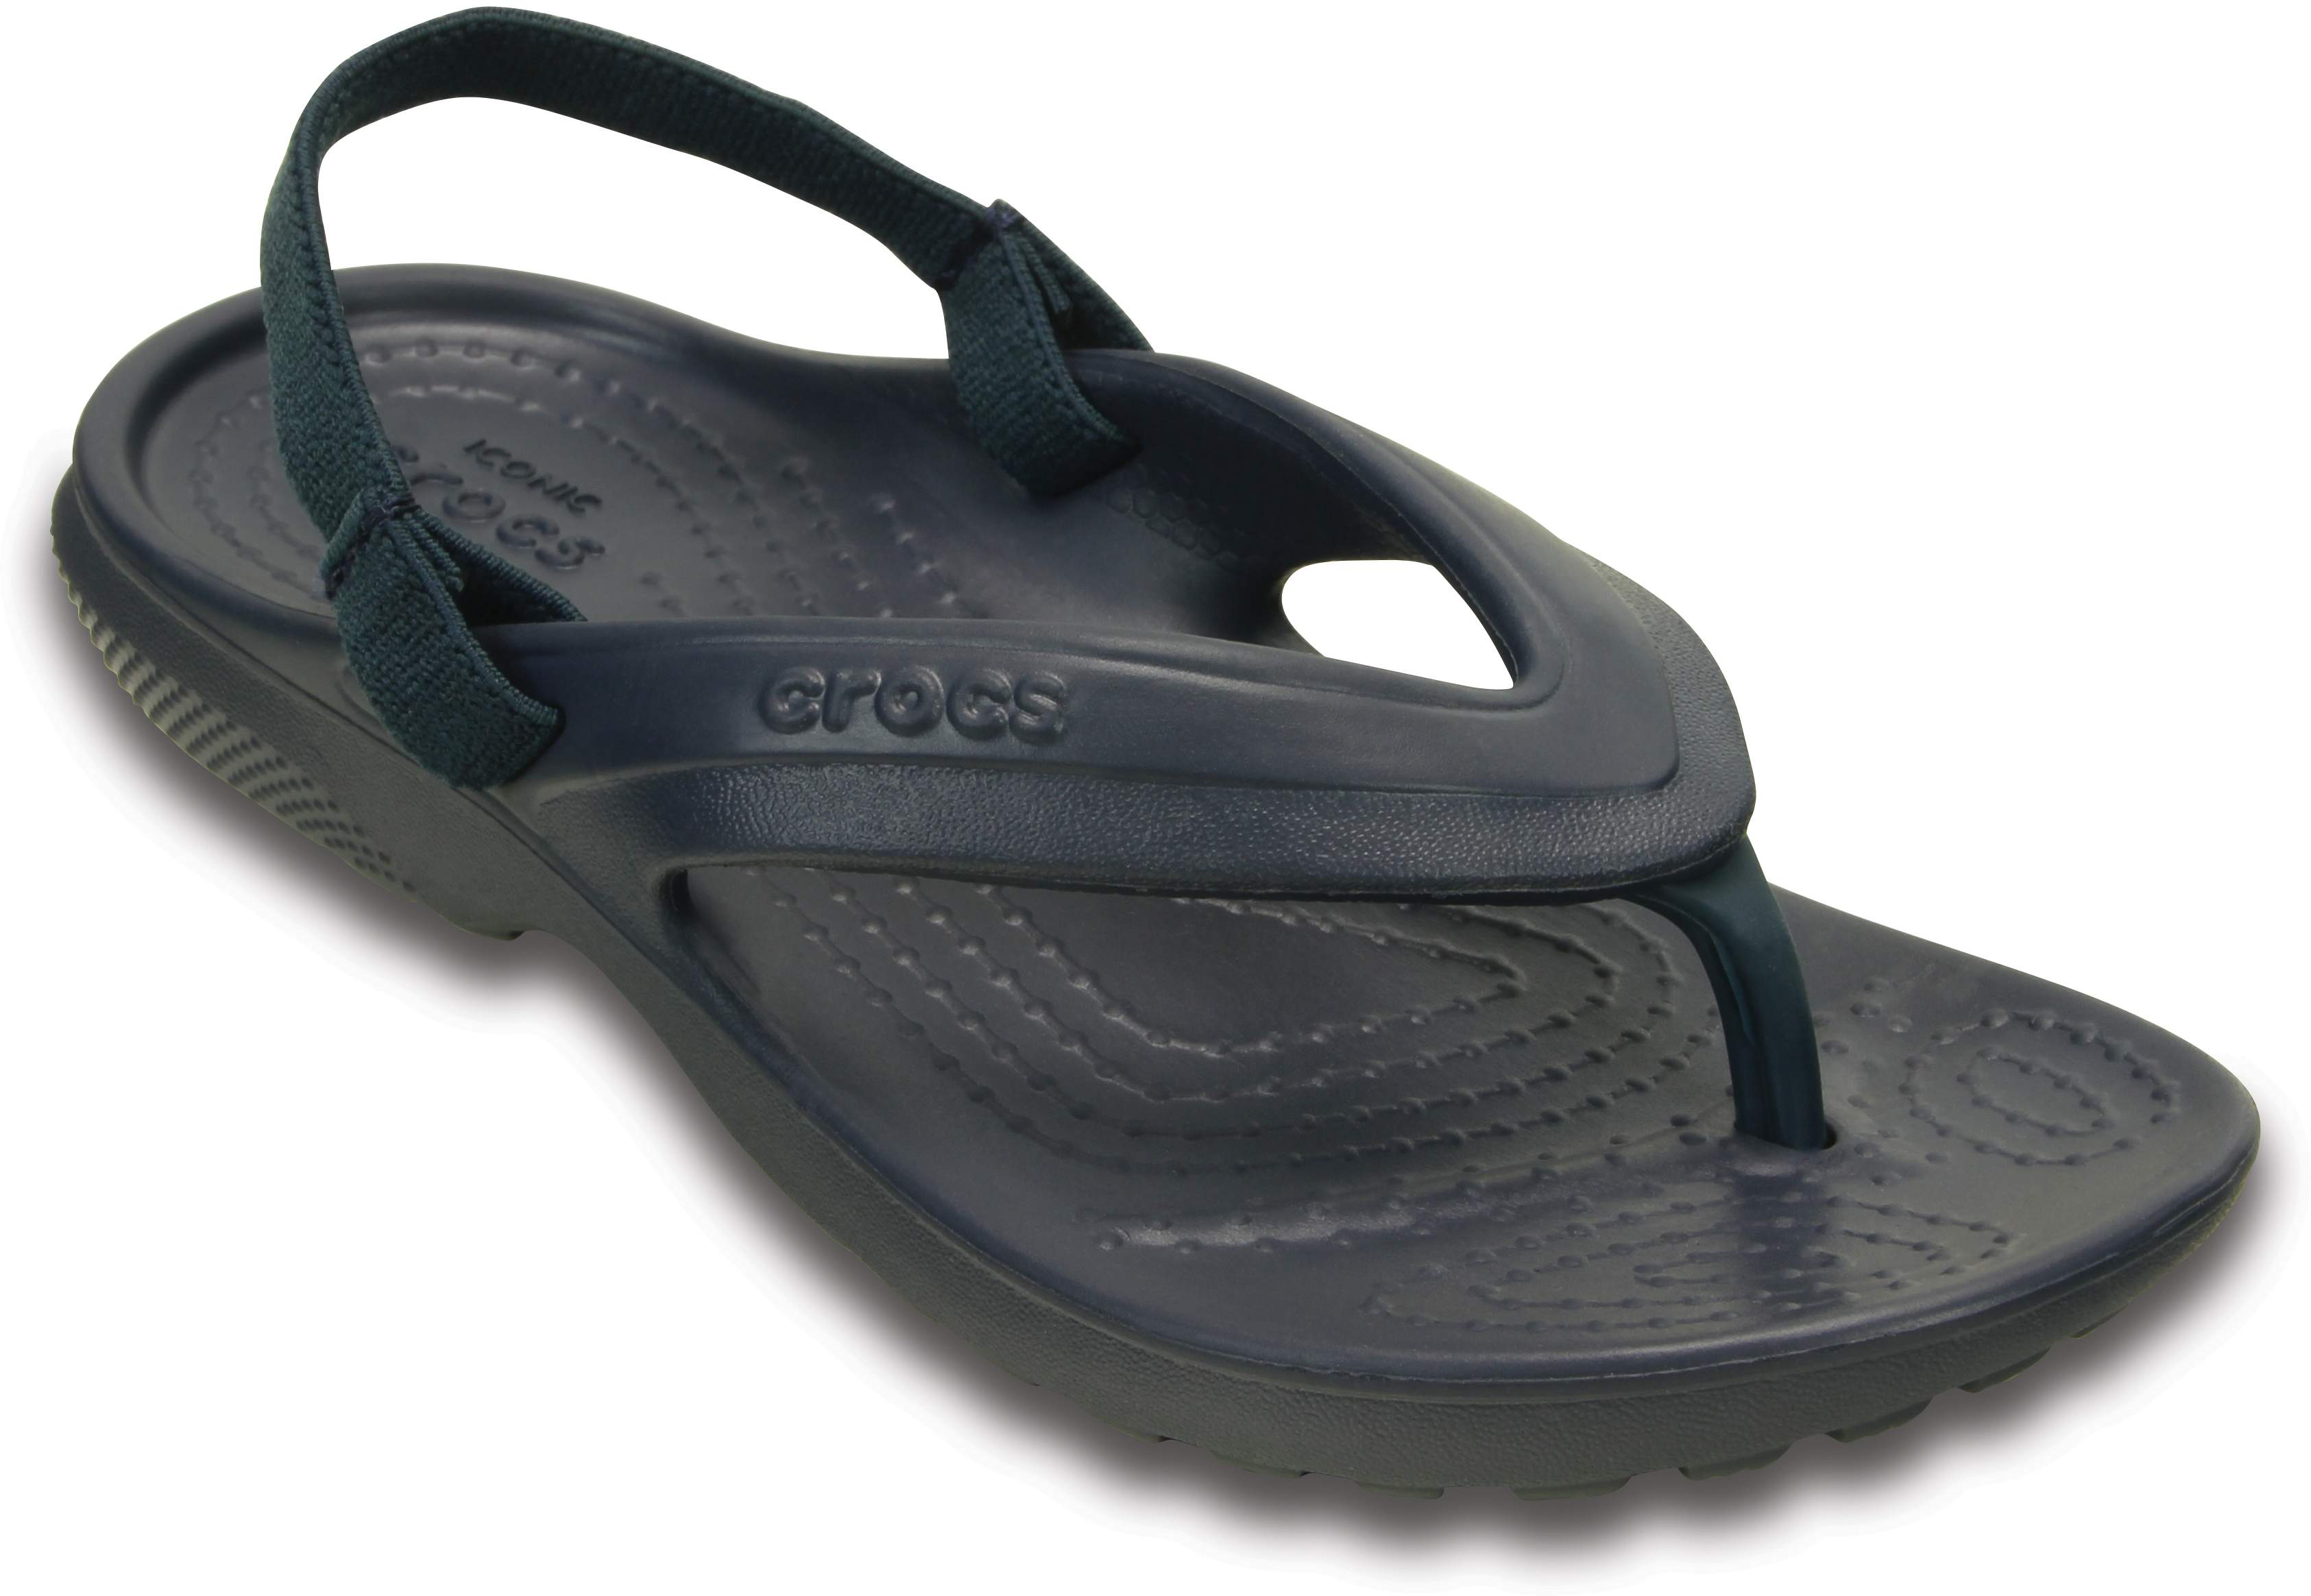 Crocs Relaxed Fit Navy Sandals For Kids